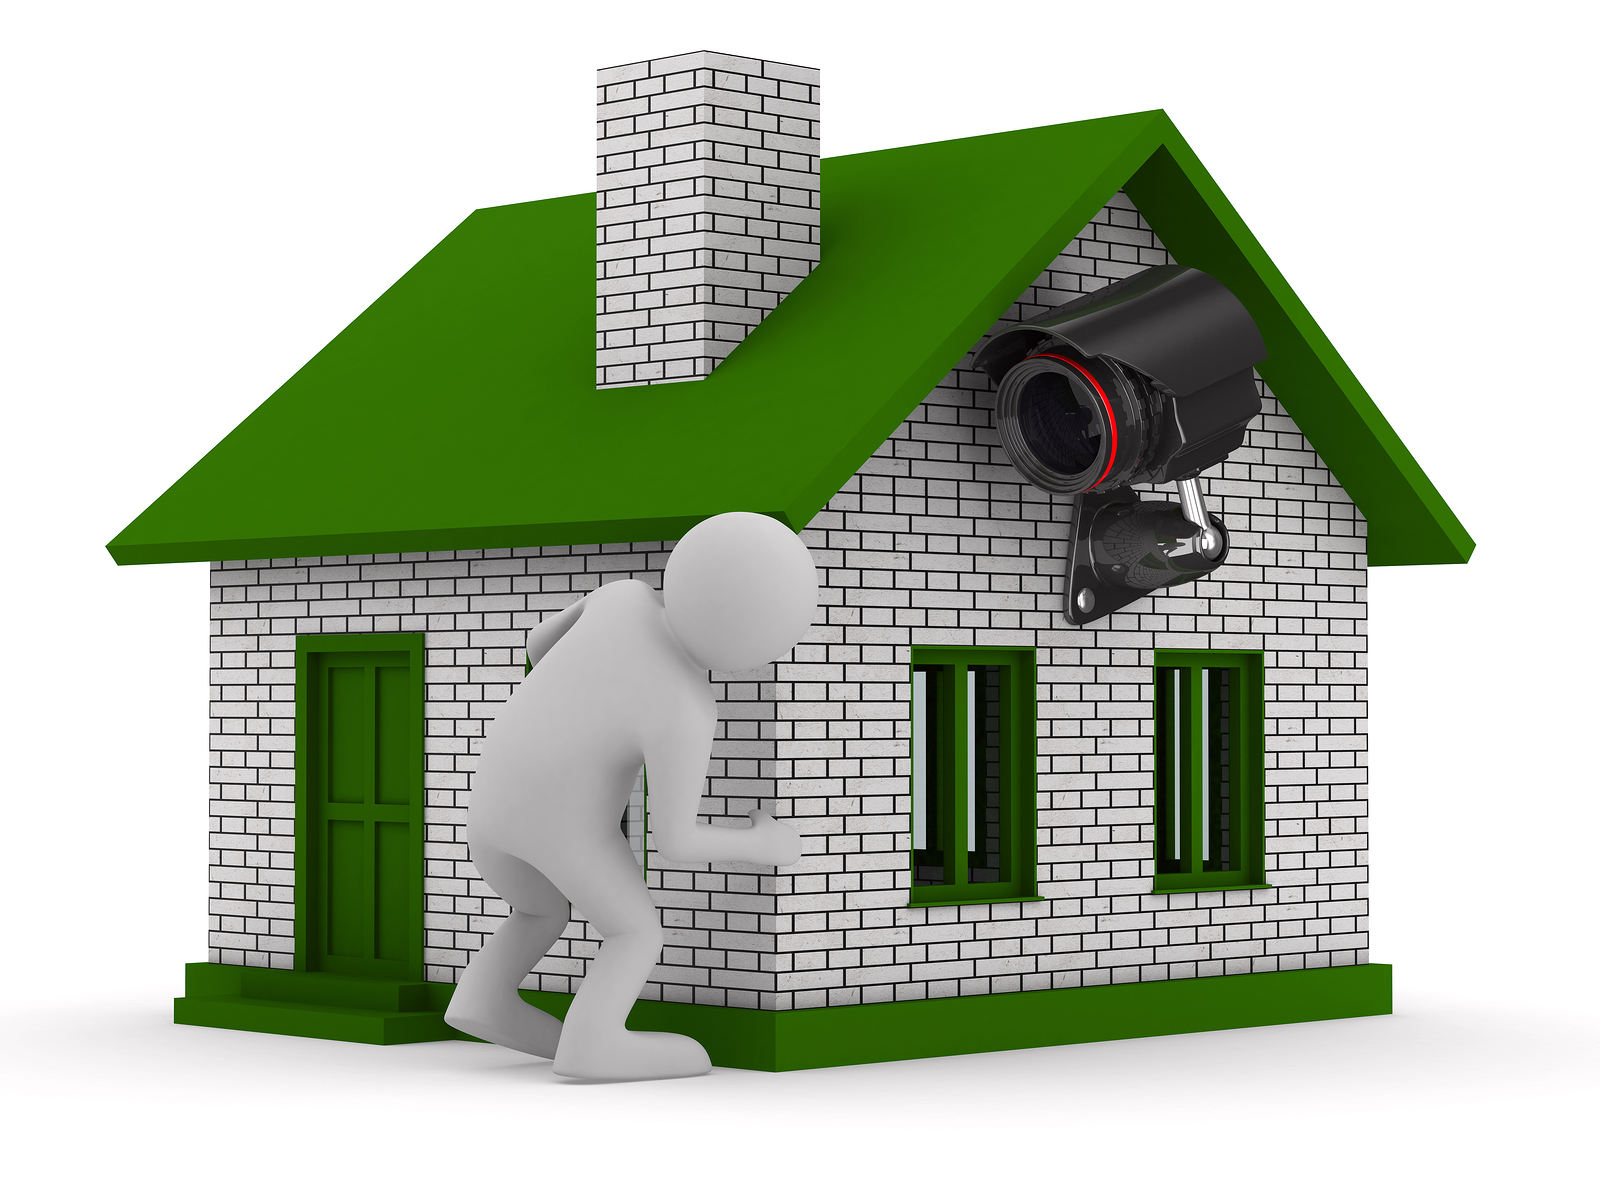 How To Green Up Your Home Security Systems  The Green. How To Create A Classroom Website. Establishing Corporate Credit. Senior Apartments California. Universities In Florida Miami. Best Phone Answering Service Cfa Test Prep. School For Human Services E Learning Programs. College Jacksonville Nc Preventing Dos Attacks. B S In Healthcare Management Salary